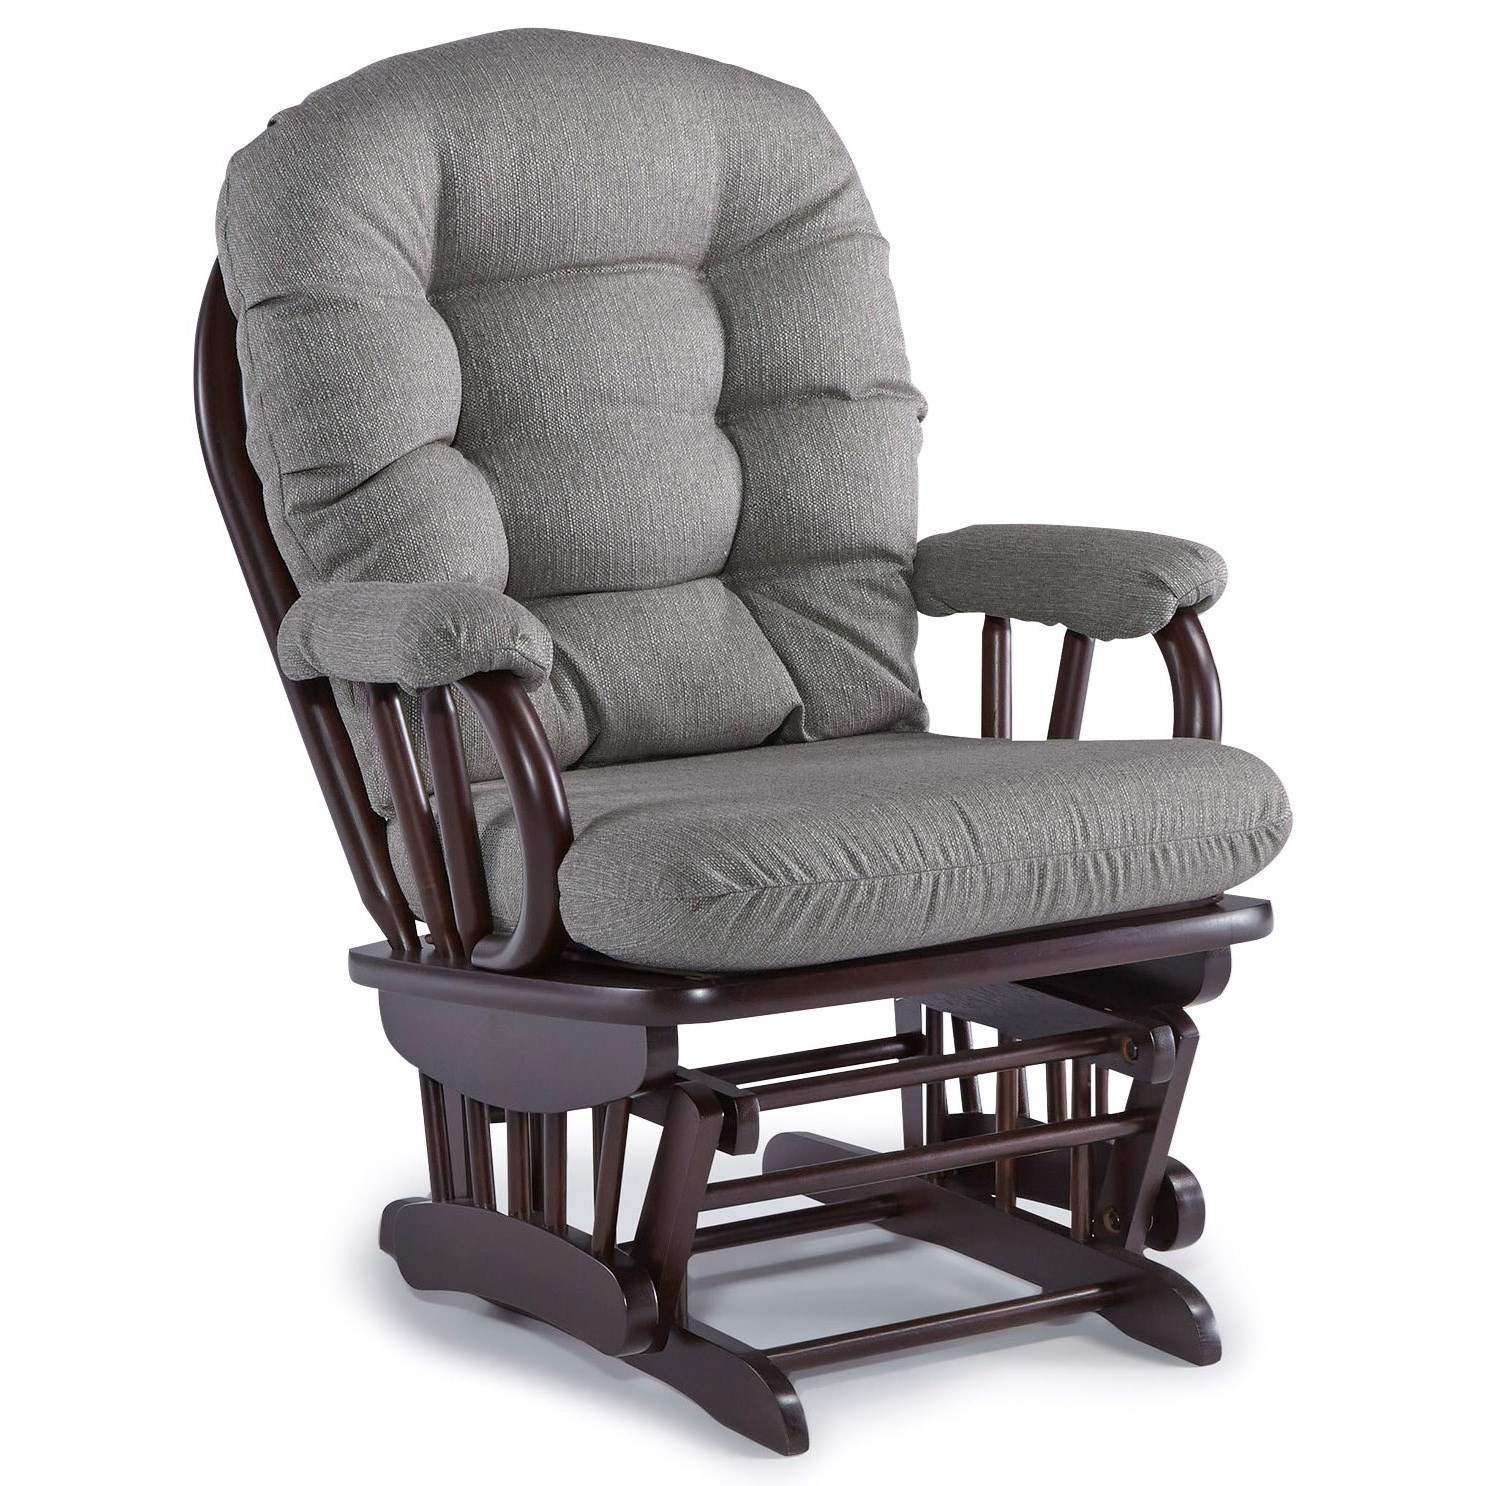 Sona Glider Rocker by Best Home Furnishings at Walker's Furniture